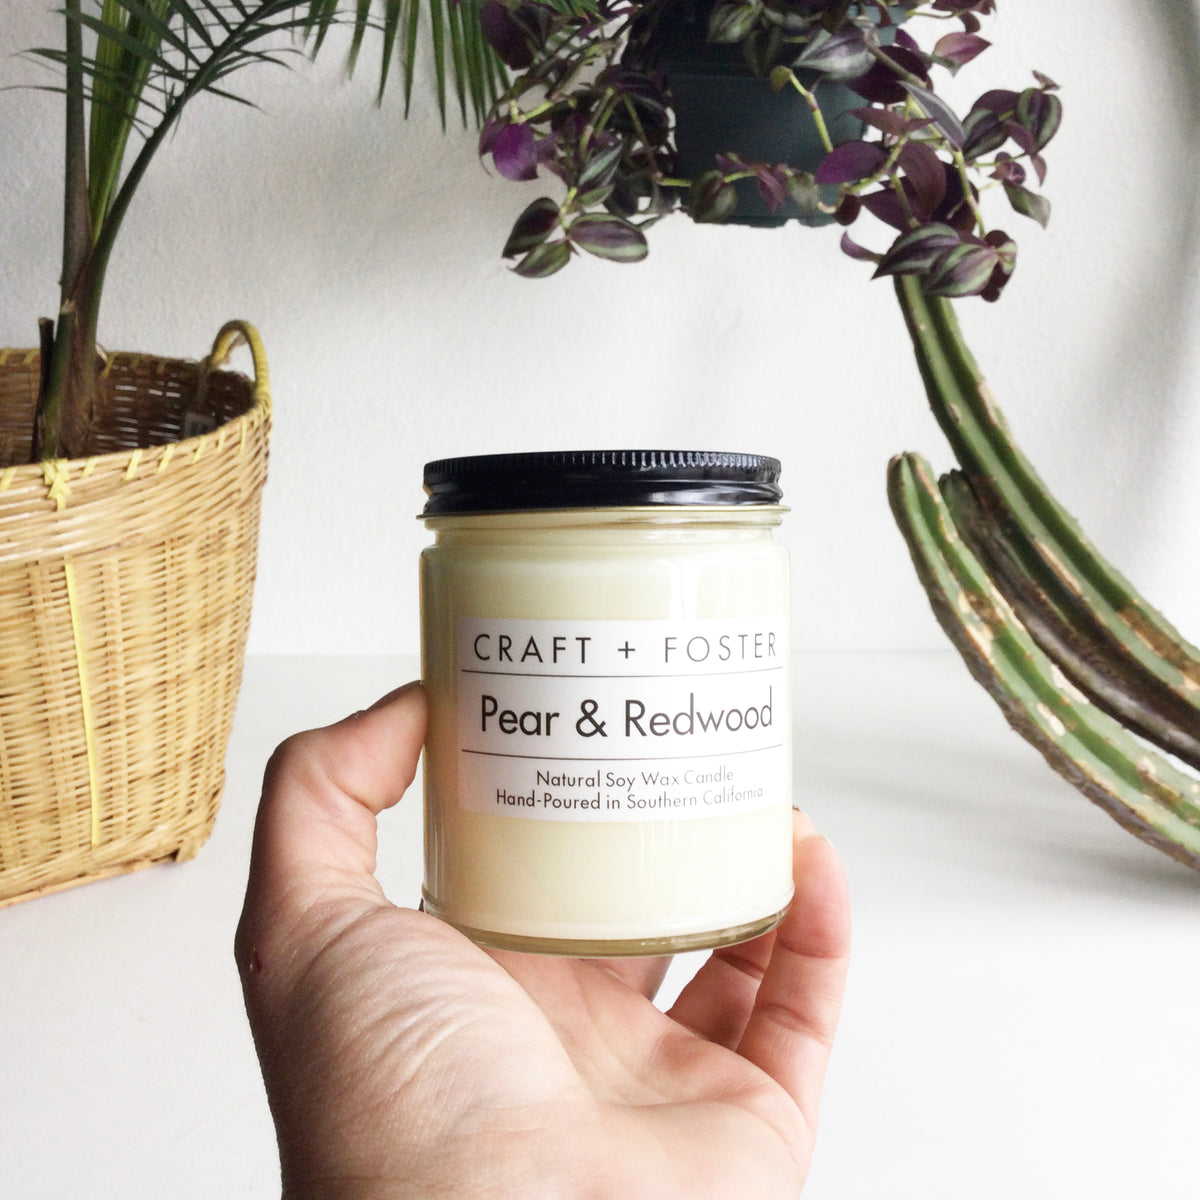 Pear & Redwood Jar Candle